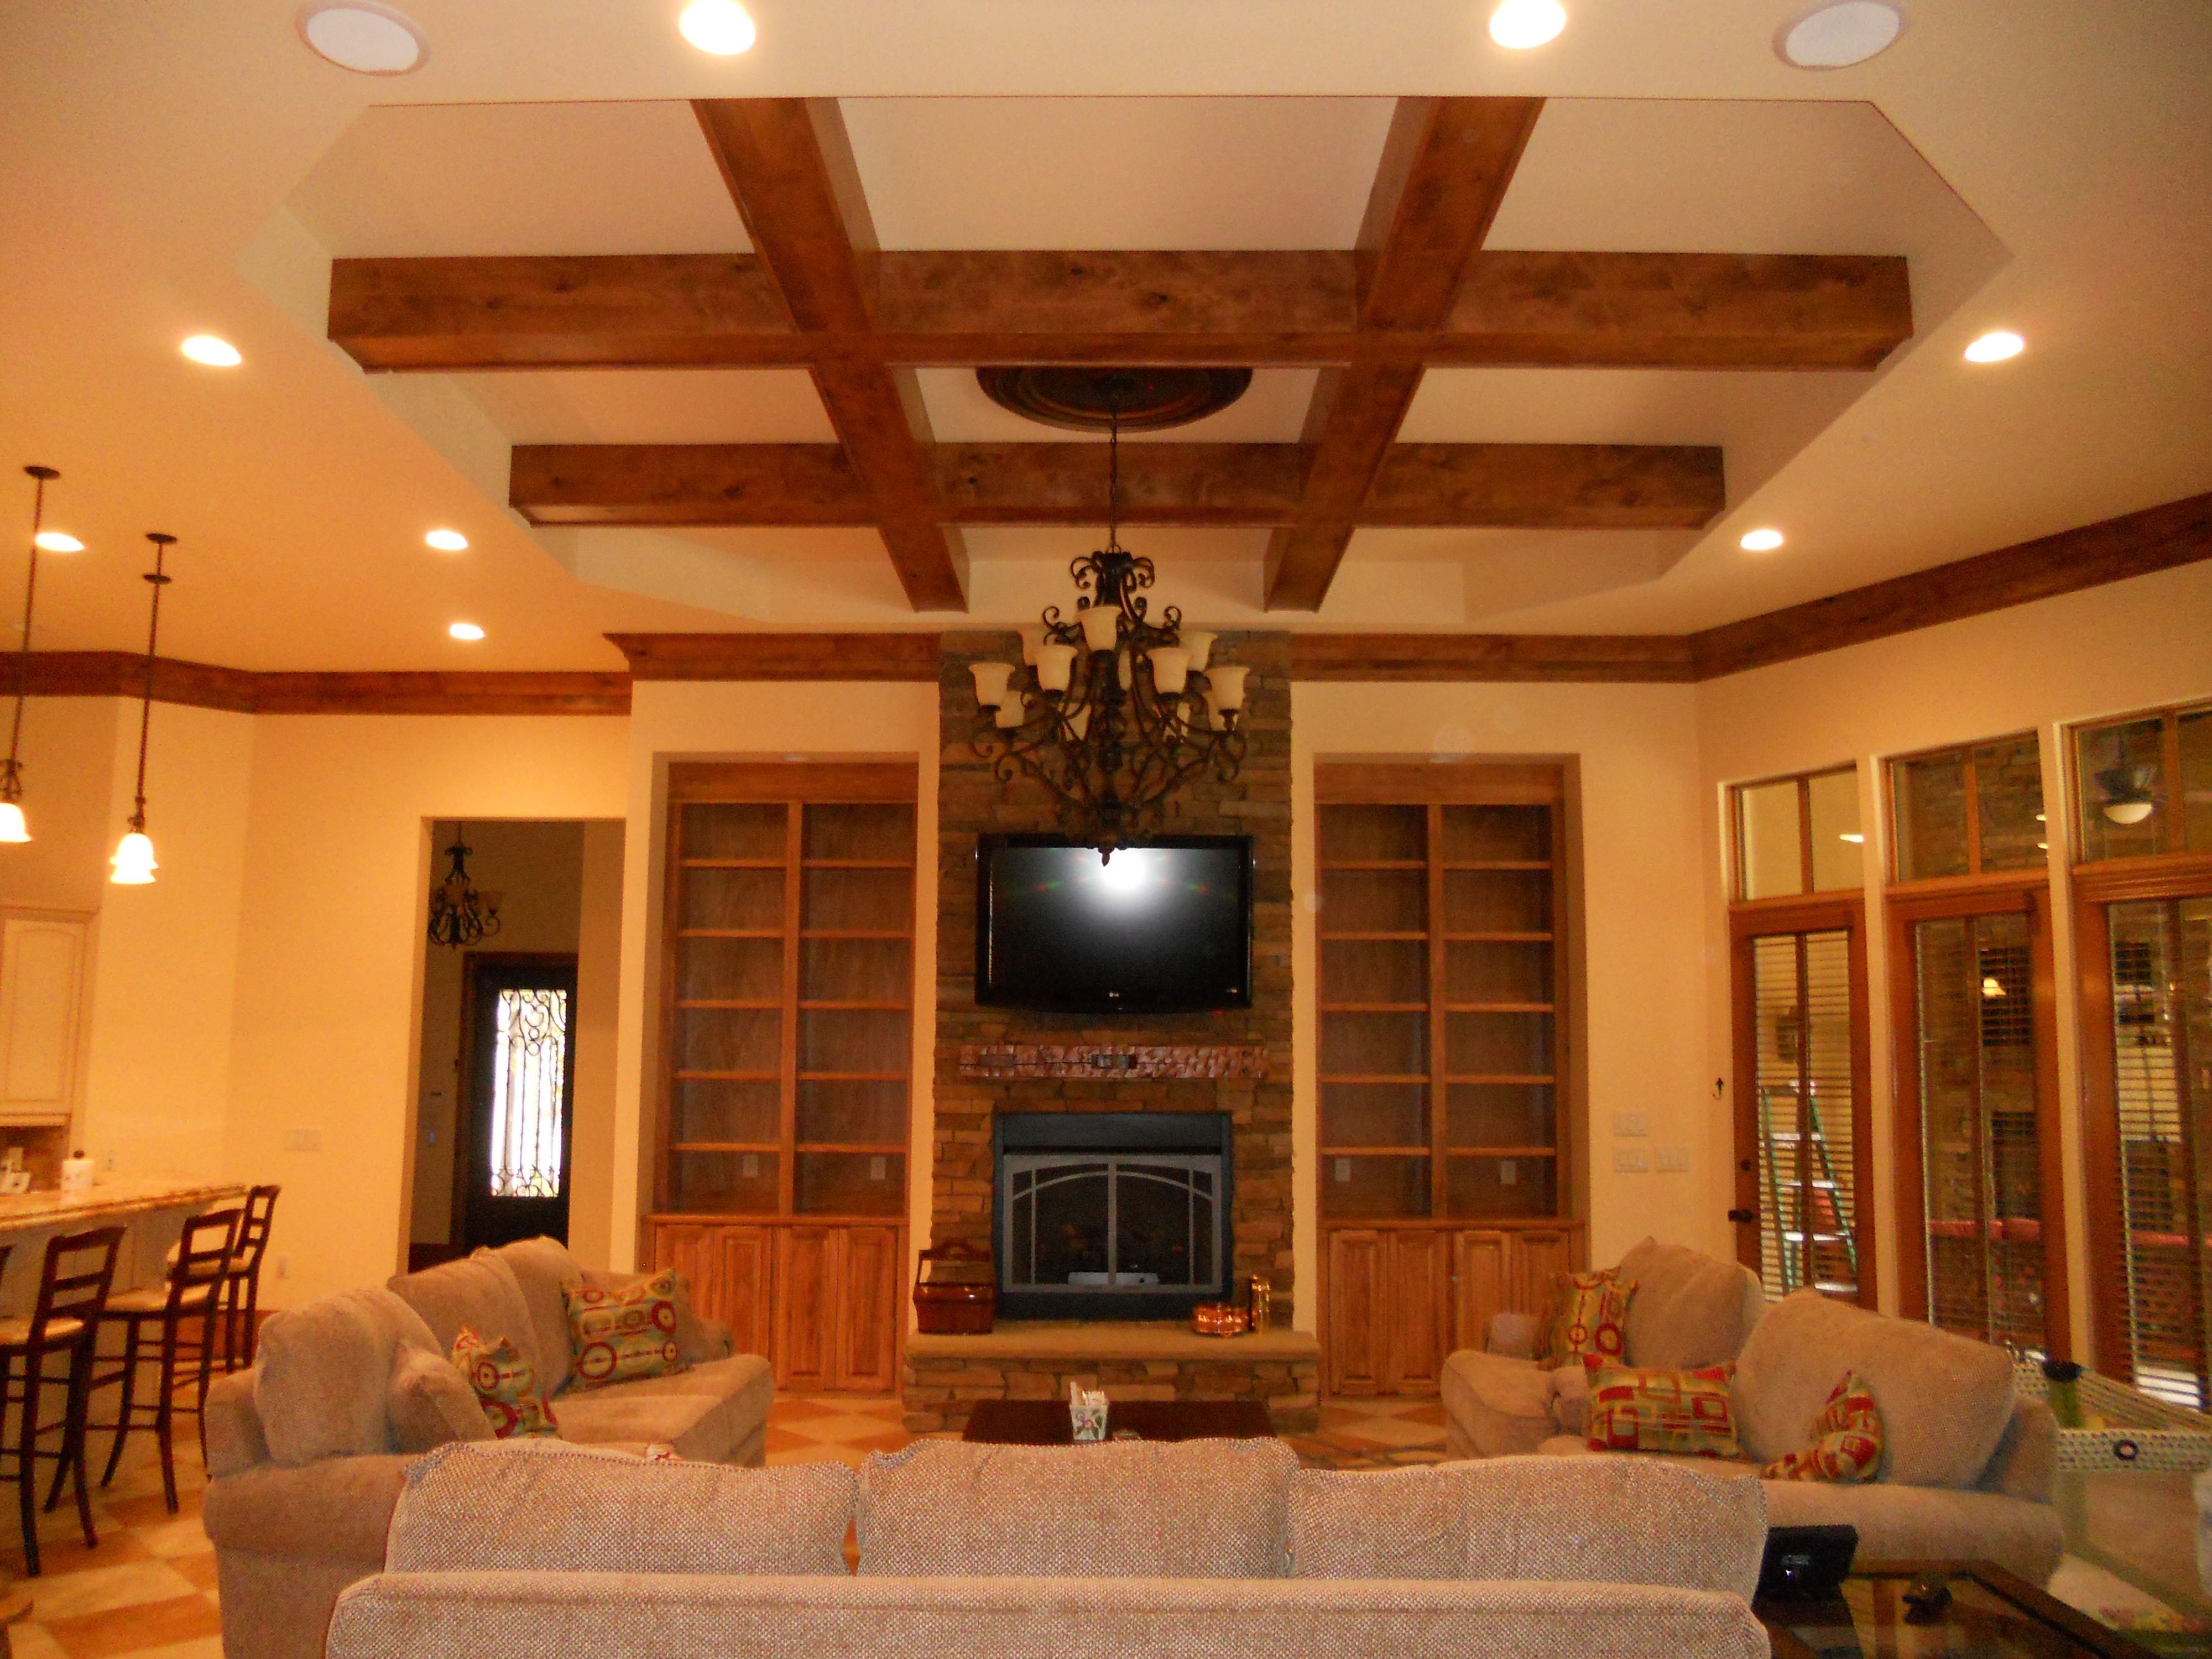 Best Ceiling Texture Types And Technique For Home Interior #Ceilingtexture